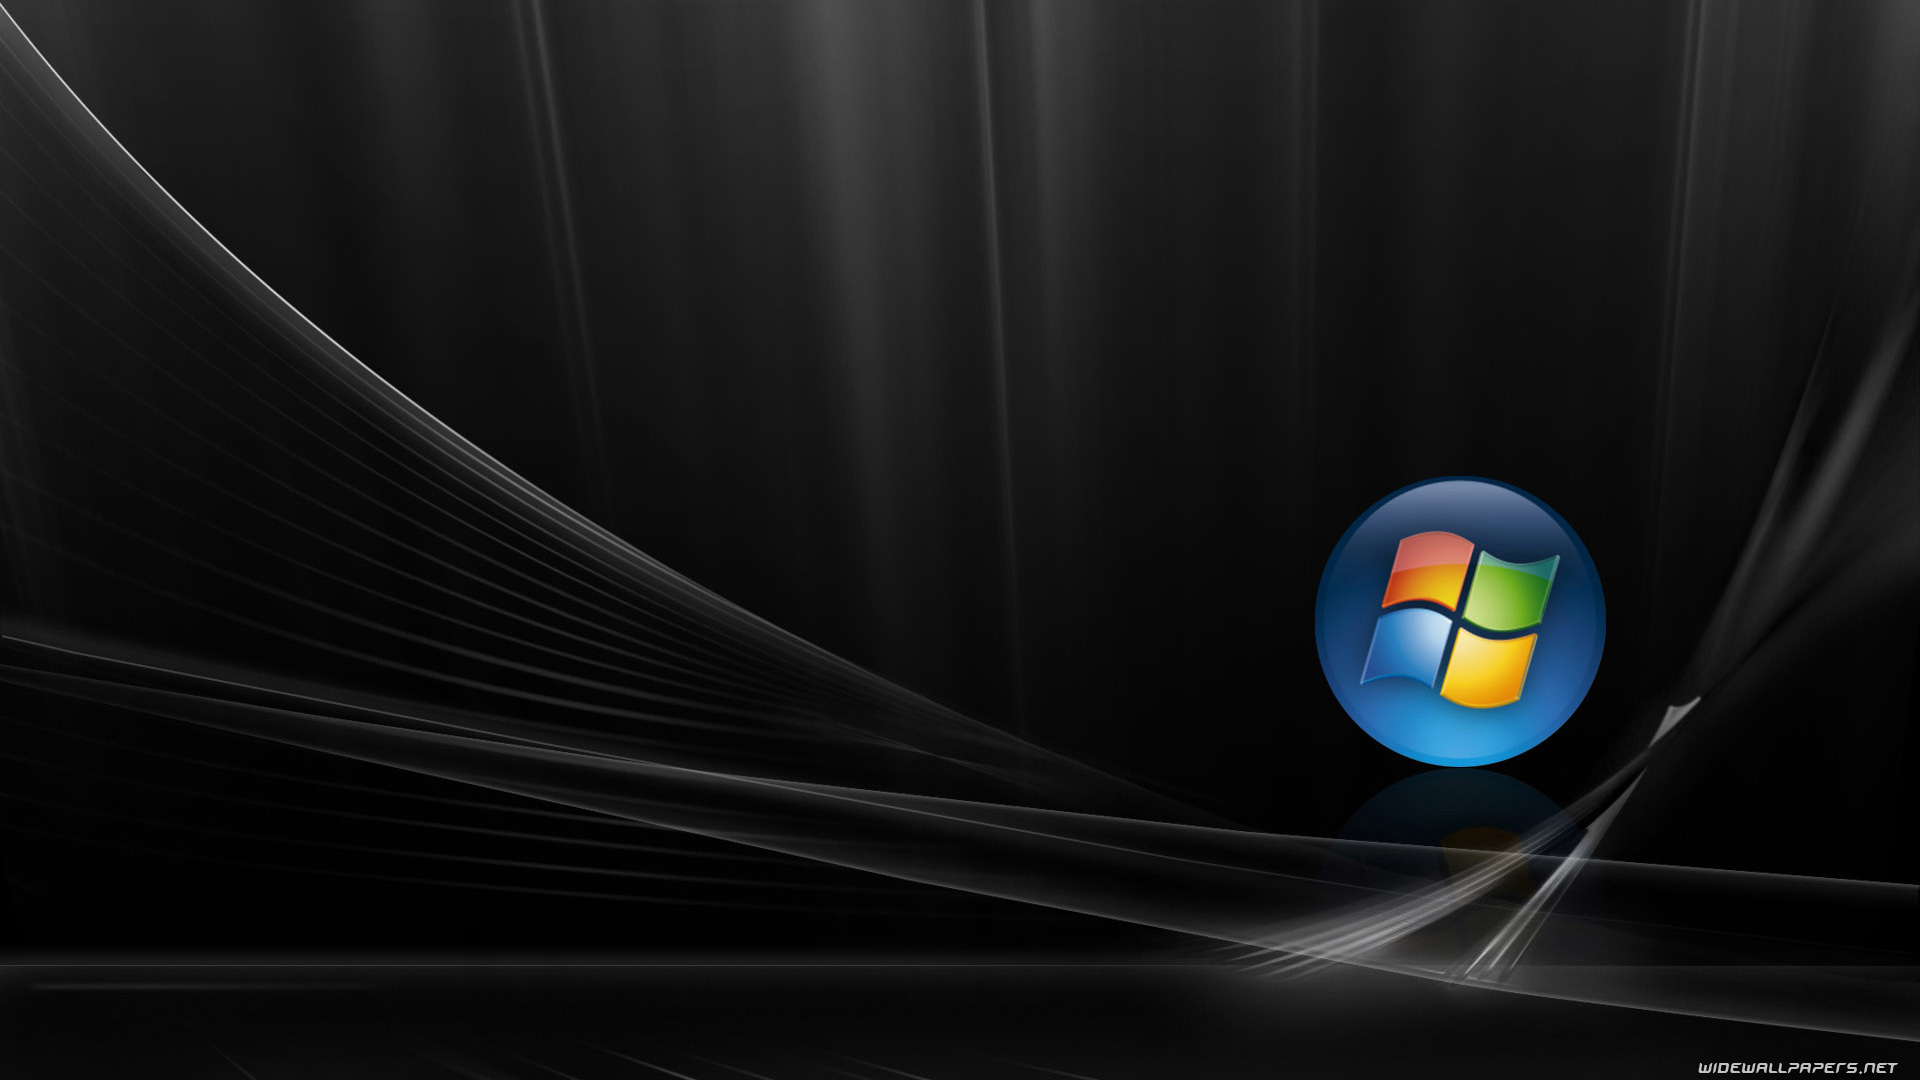 Black Windows - Windows black wallpaper 26 desktop wallpaper windows black wallpaper 26 desktop wallpaper